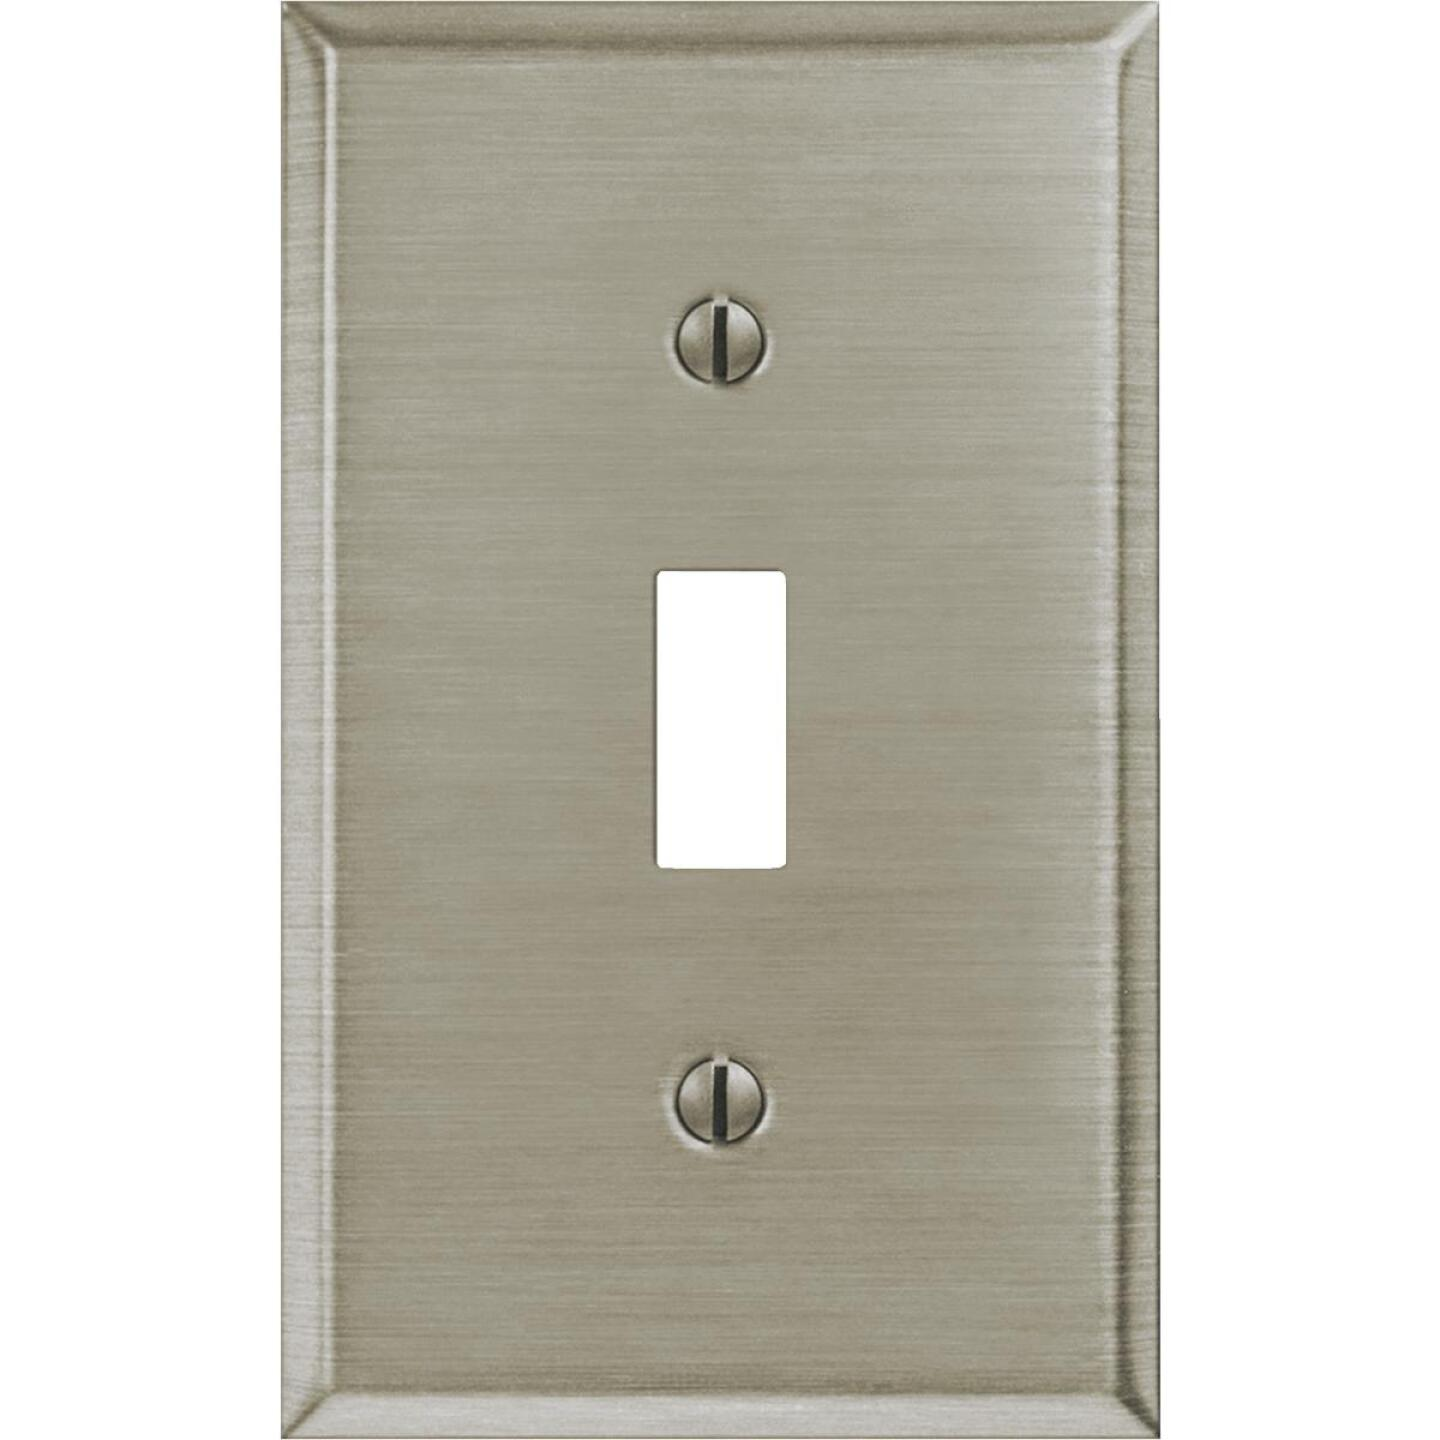 Amerelle 1-Gang Stamped Steel Toggle Switch Wall Plate, Brushed Nickel Image 2